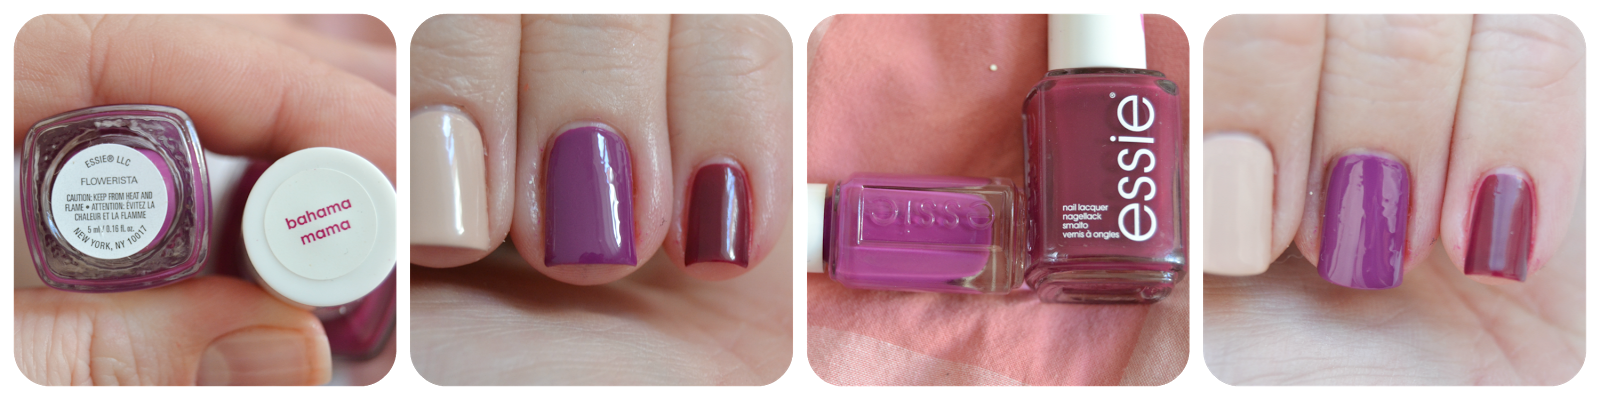 Essie Flowerista Vs Bahama Mama LE Swatch Review Vergleich